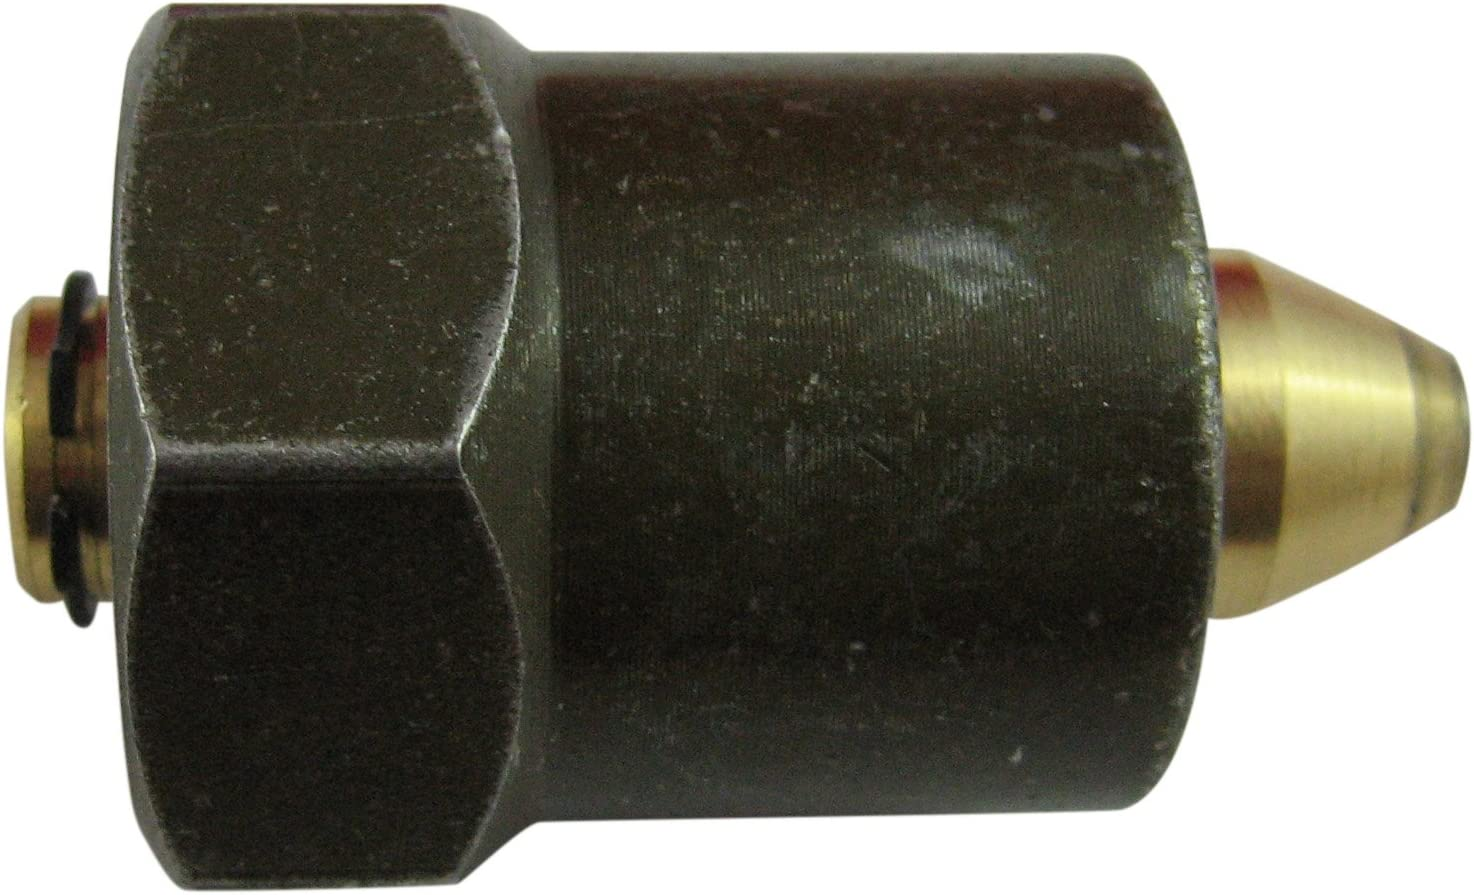 Cap compatible with Dodge 6.7L Cummins AccurateDiesel Diesel Injector Block-Off Tool